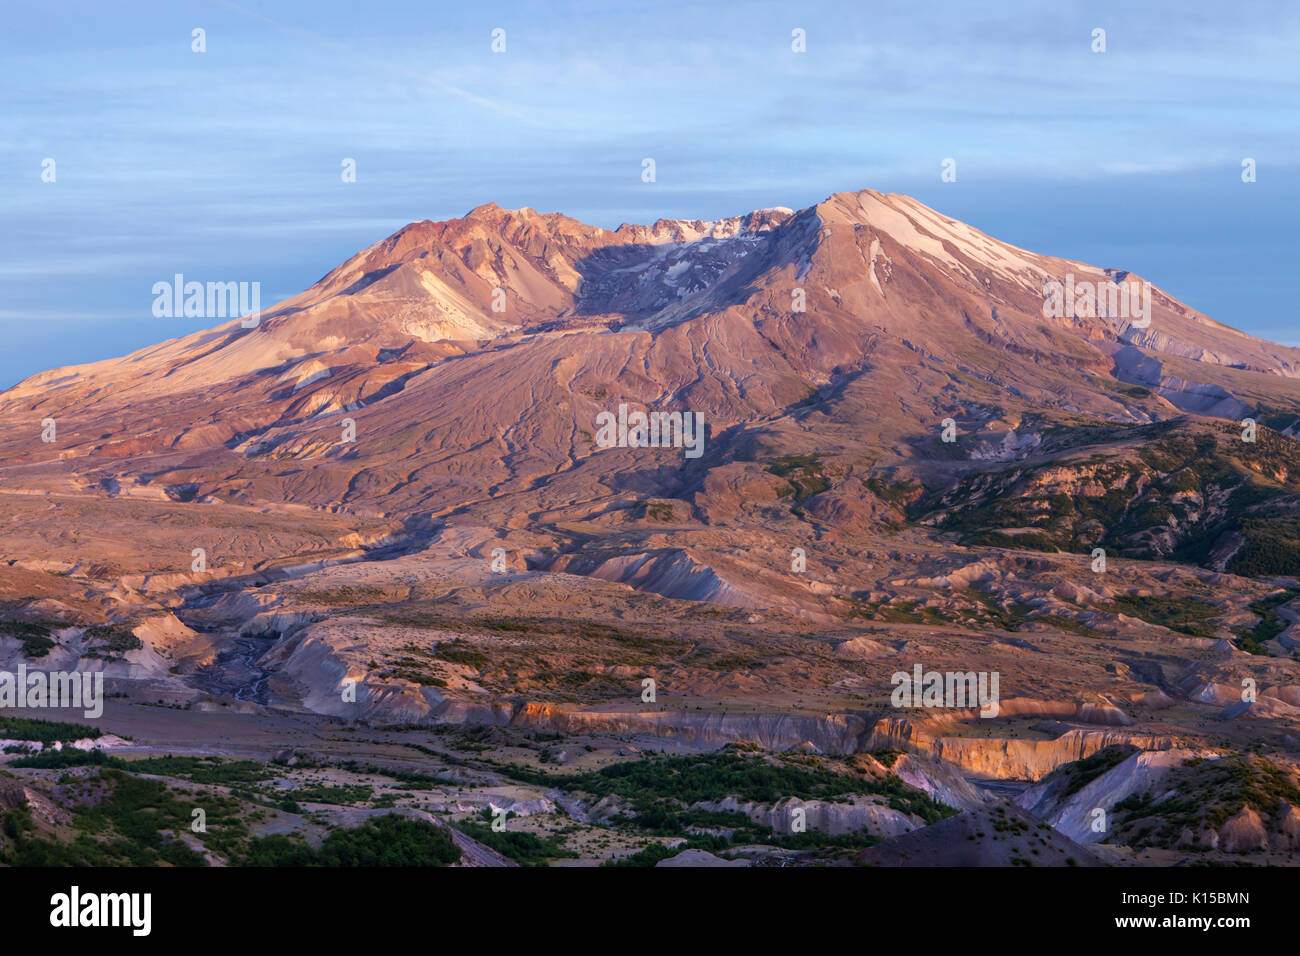 31 Rare Facts About Mount St. Helens That'll Make You Go Whoa!